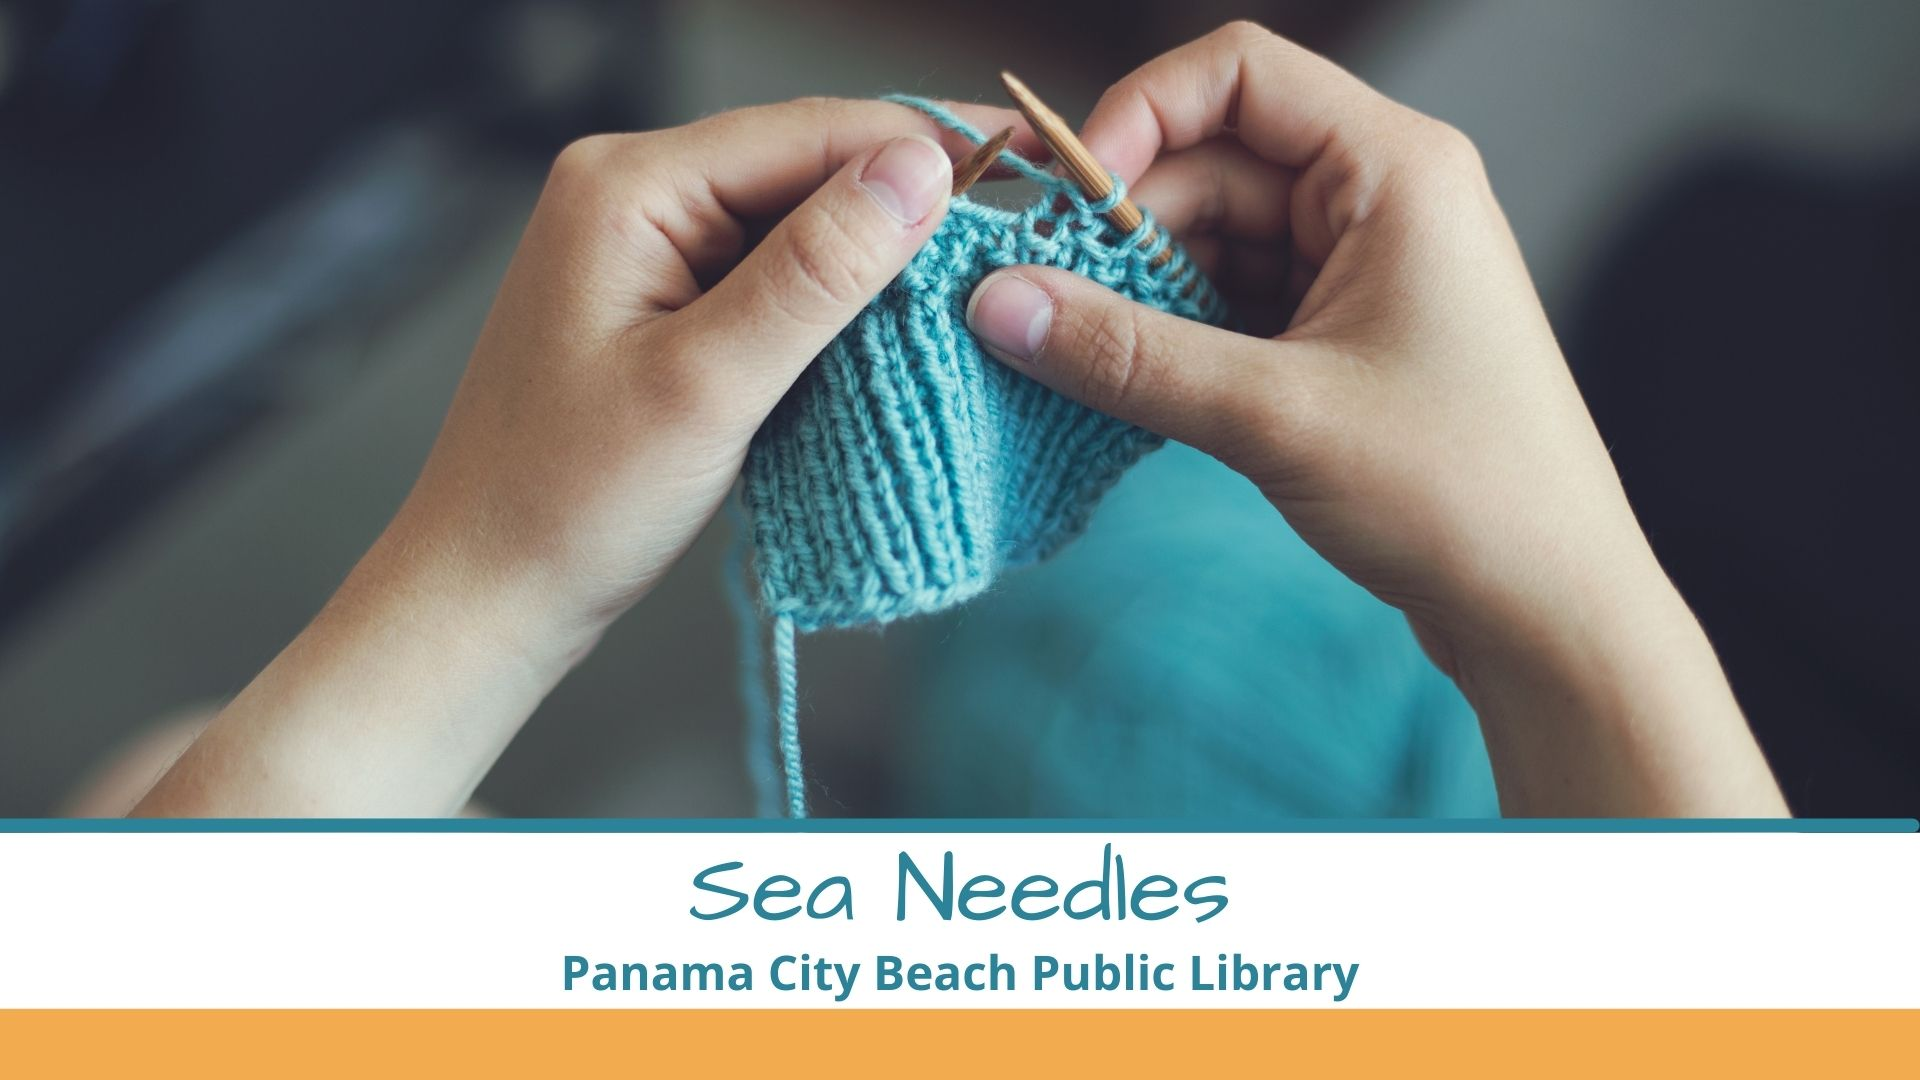 Photograph of a woman's hands knitting something teal green for Sea Needles club